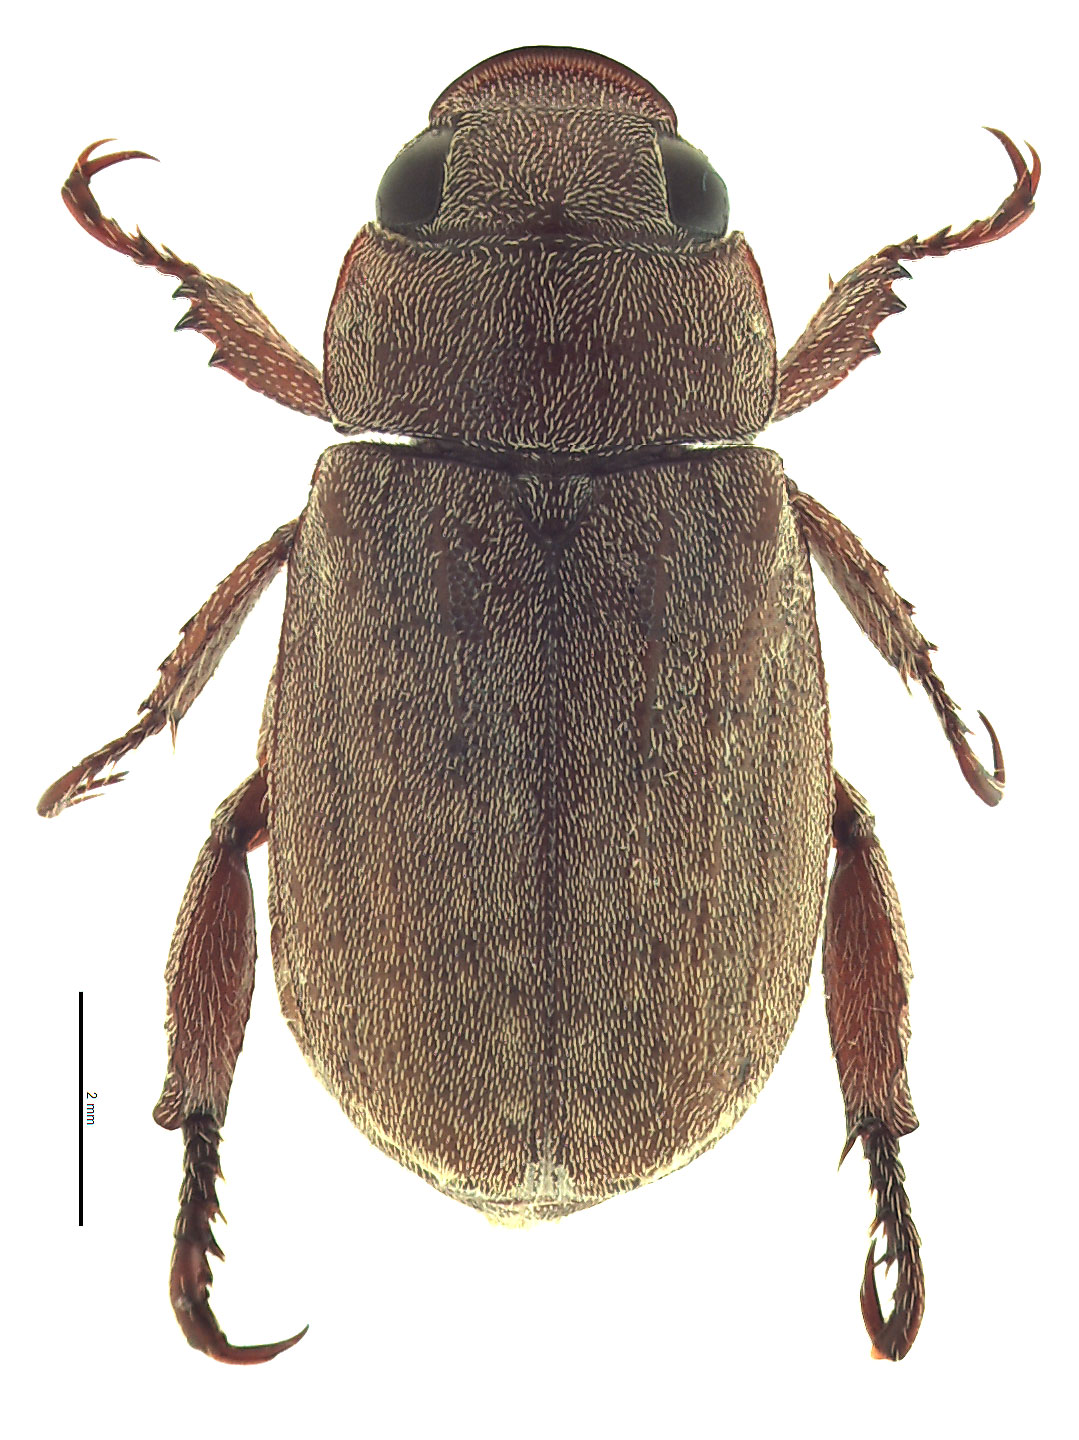 <em>Adoretus sinicus</em> male; photo by E.L. Engasser